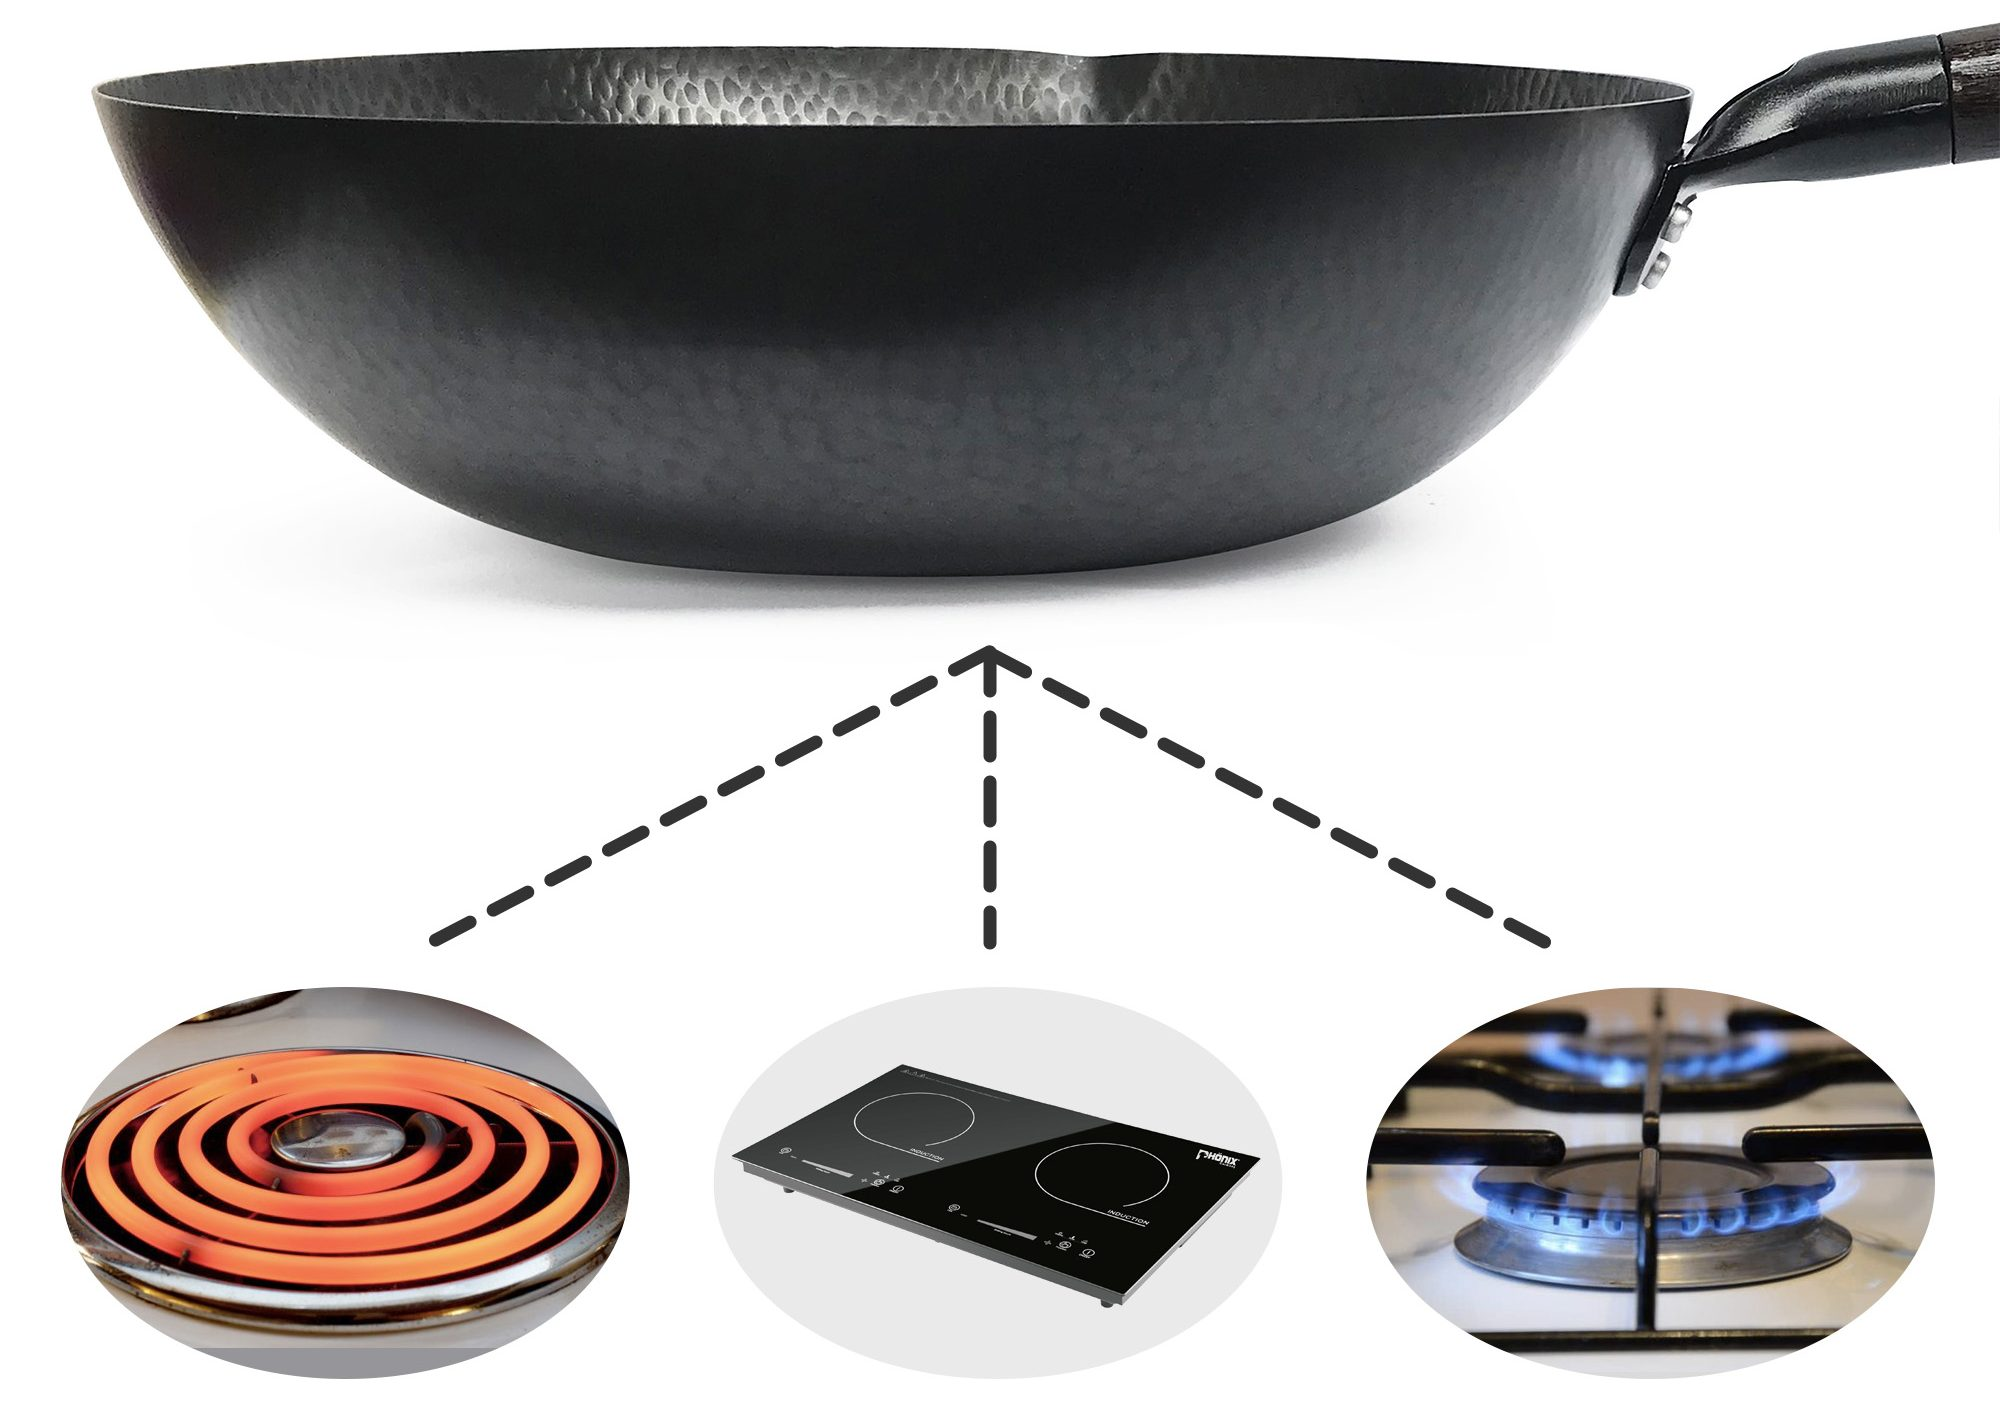 Stainless steel and cast iron wok alternative.